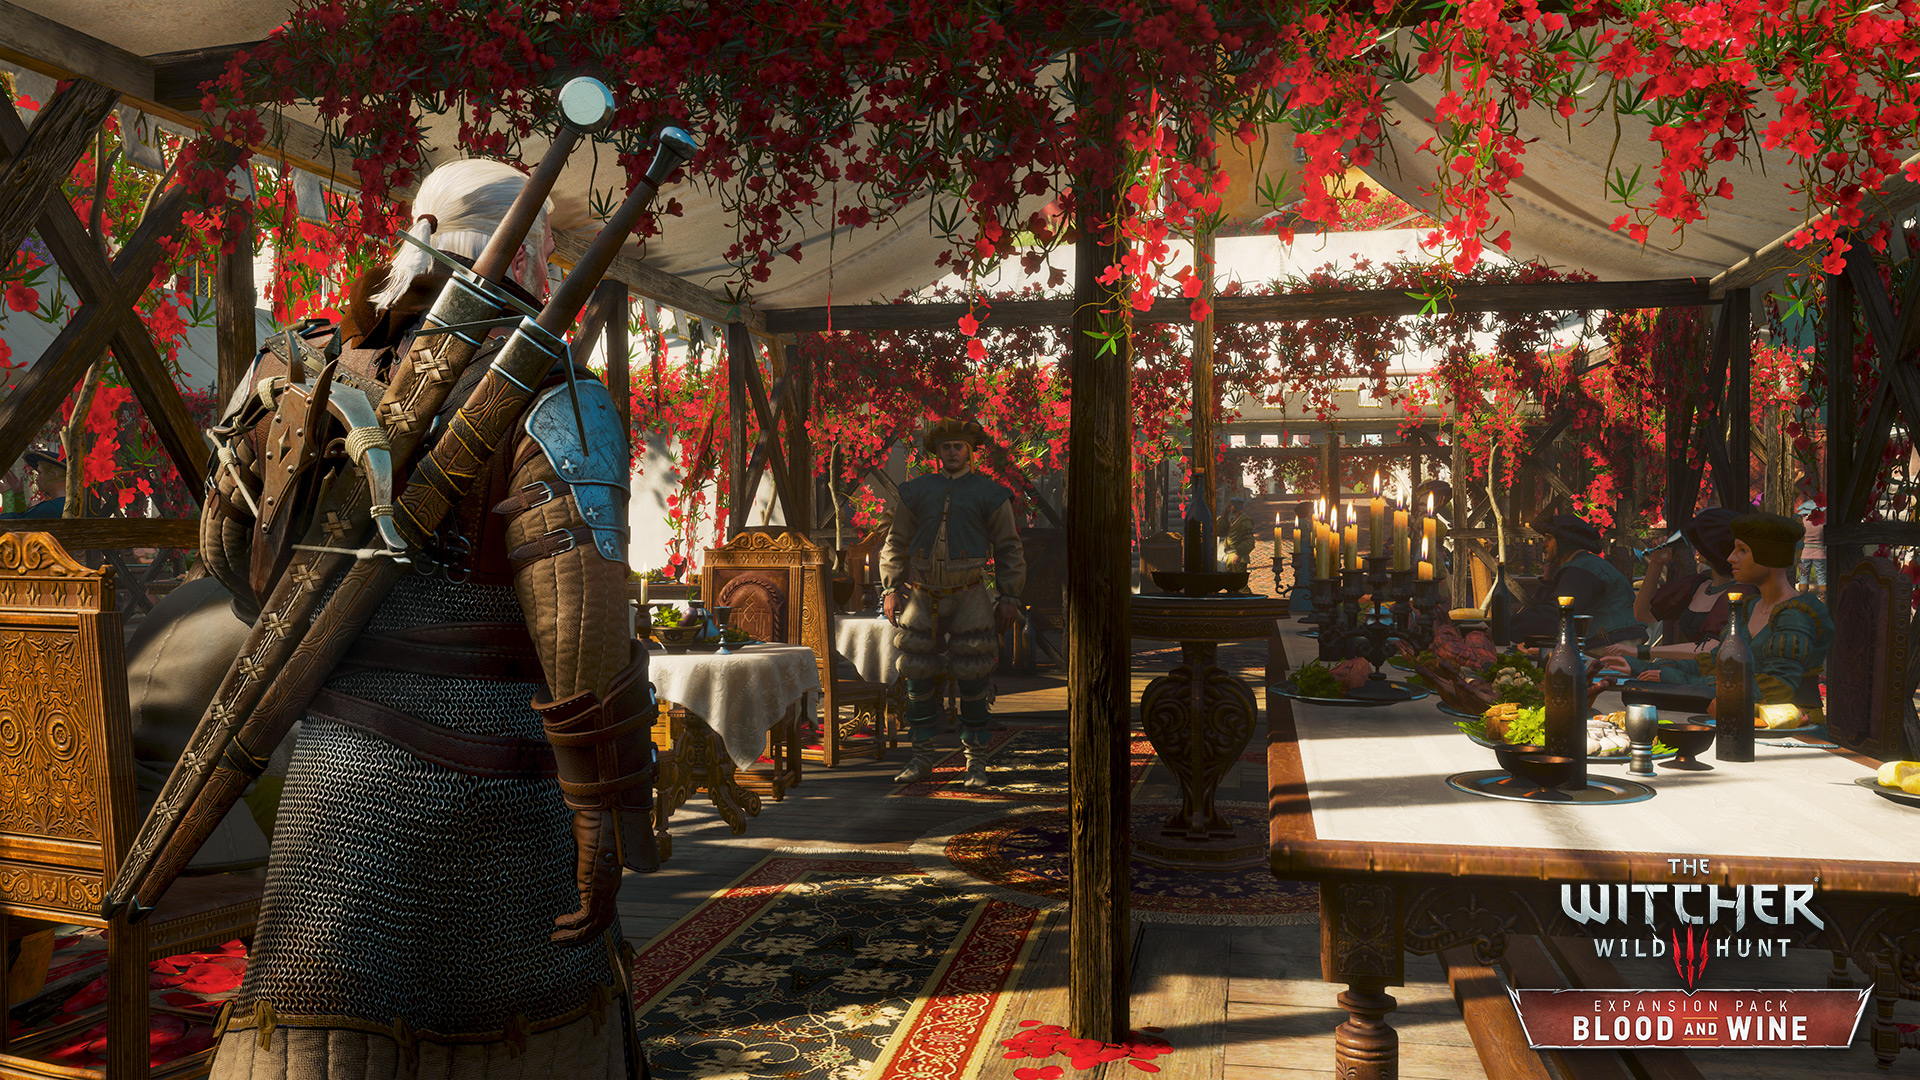 the witcher 3 pc patch 1.10 download